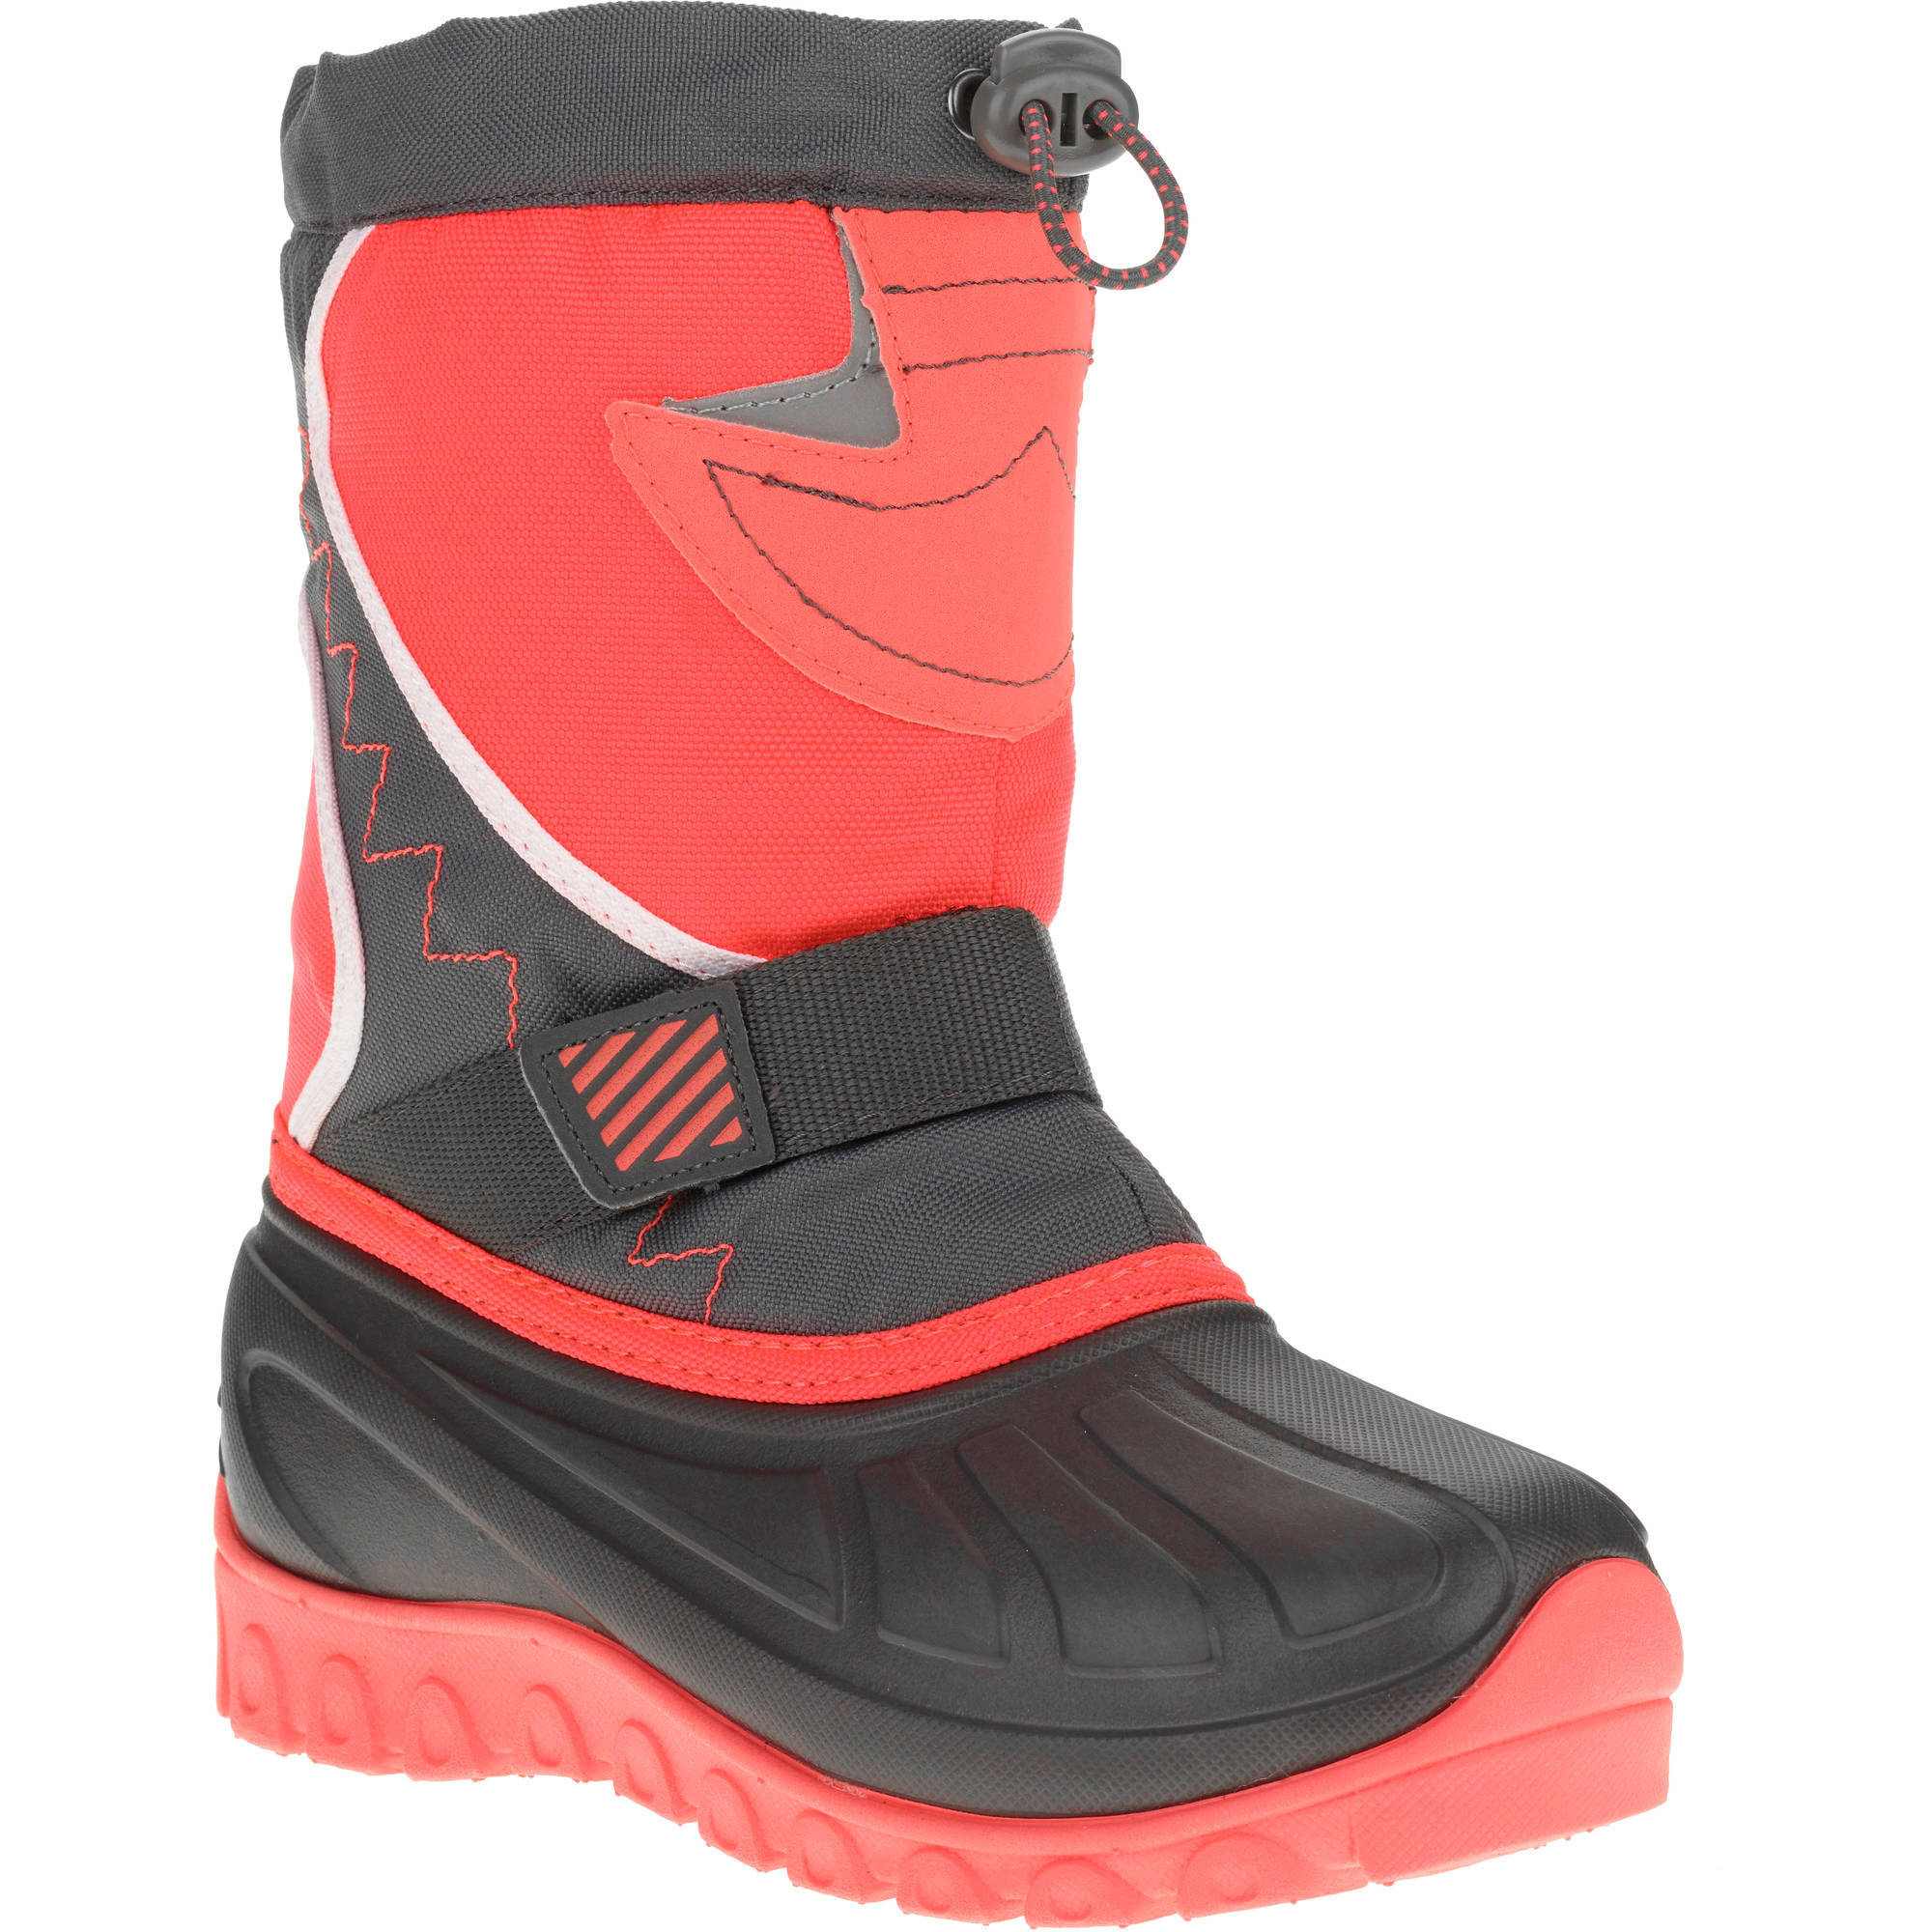 Ozark Trail Girl's Temp Rated Winter Boot